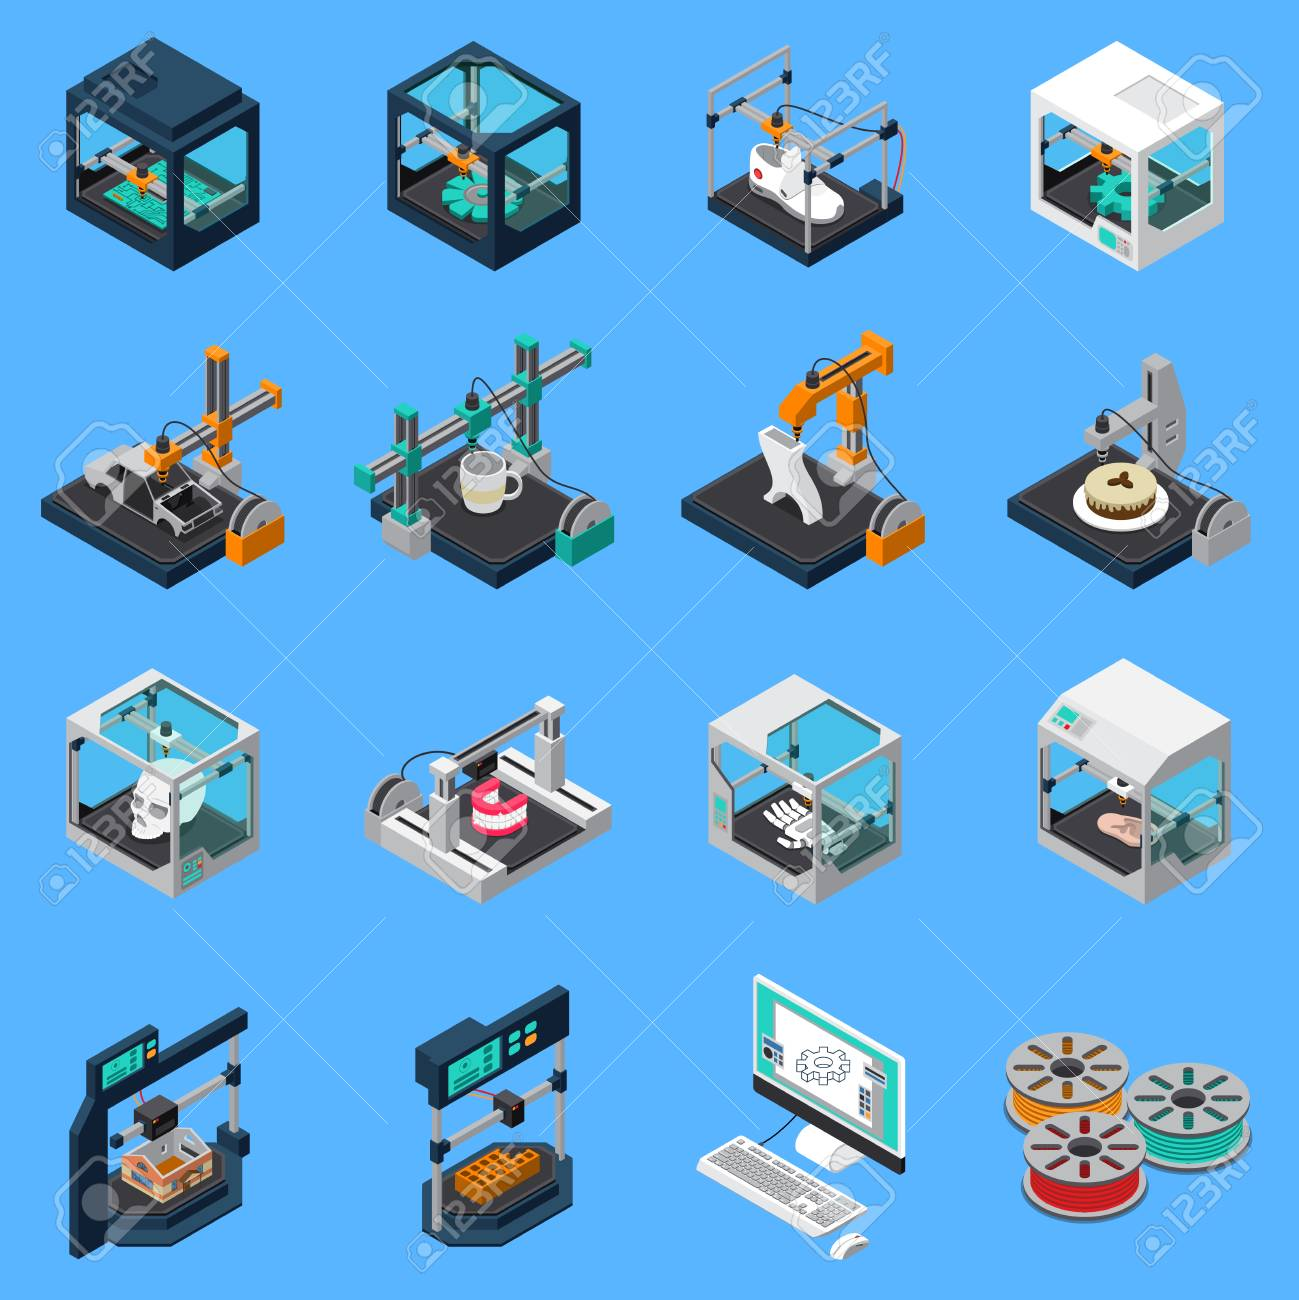 3D printing industry isometric icons collection with isolated icons of industrial stitching facilities and sewings machines vector illustration - 109877120